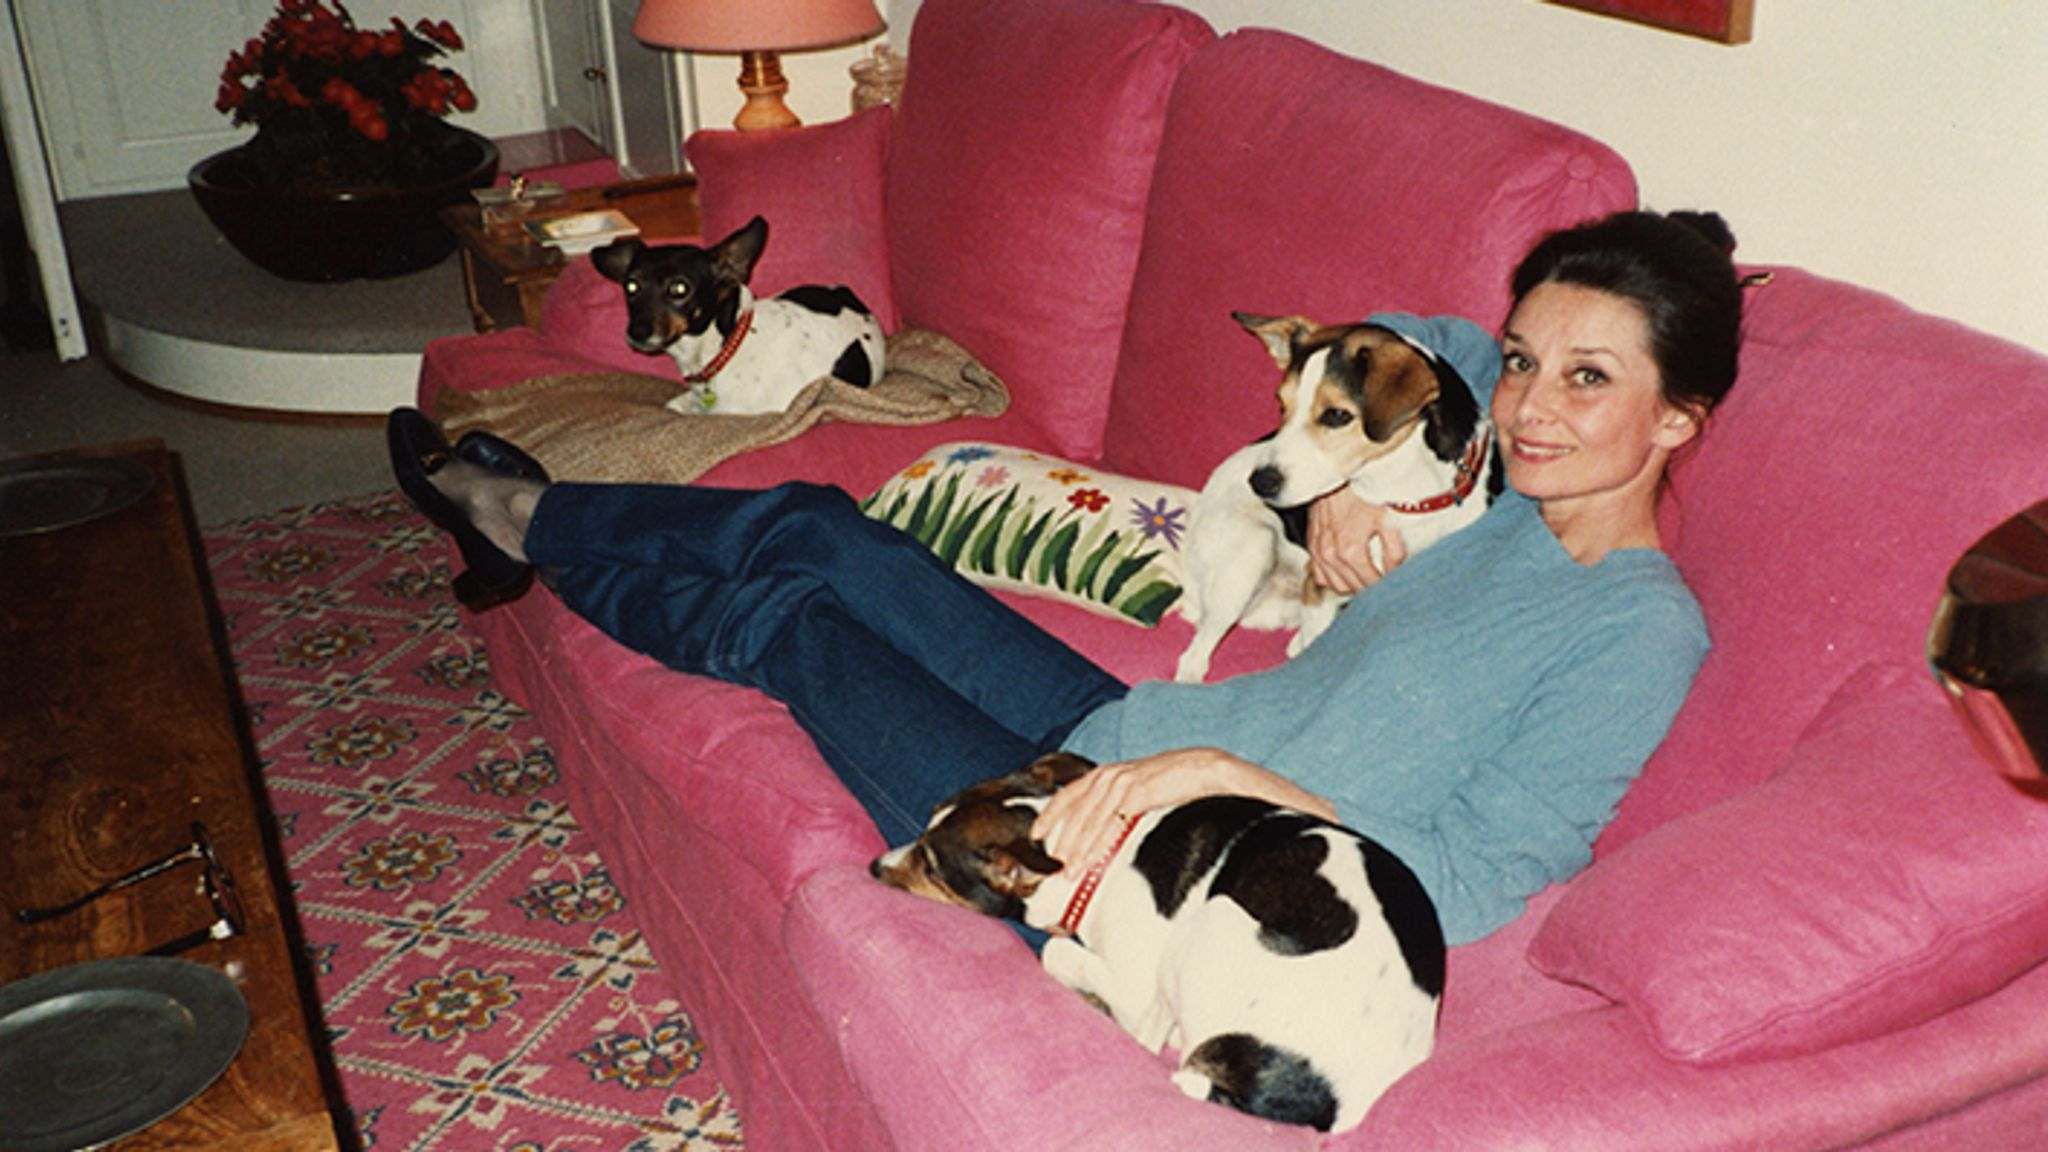 Audrey at home with her Jack Russells in 1987 {AHT caption: La Paisible, 1987.}